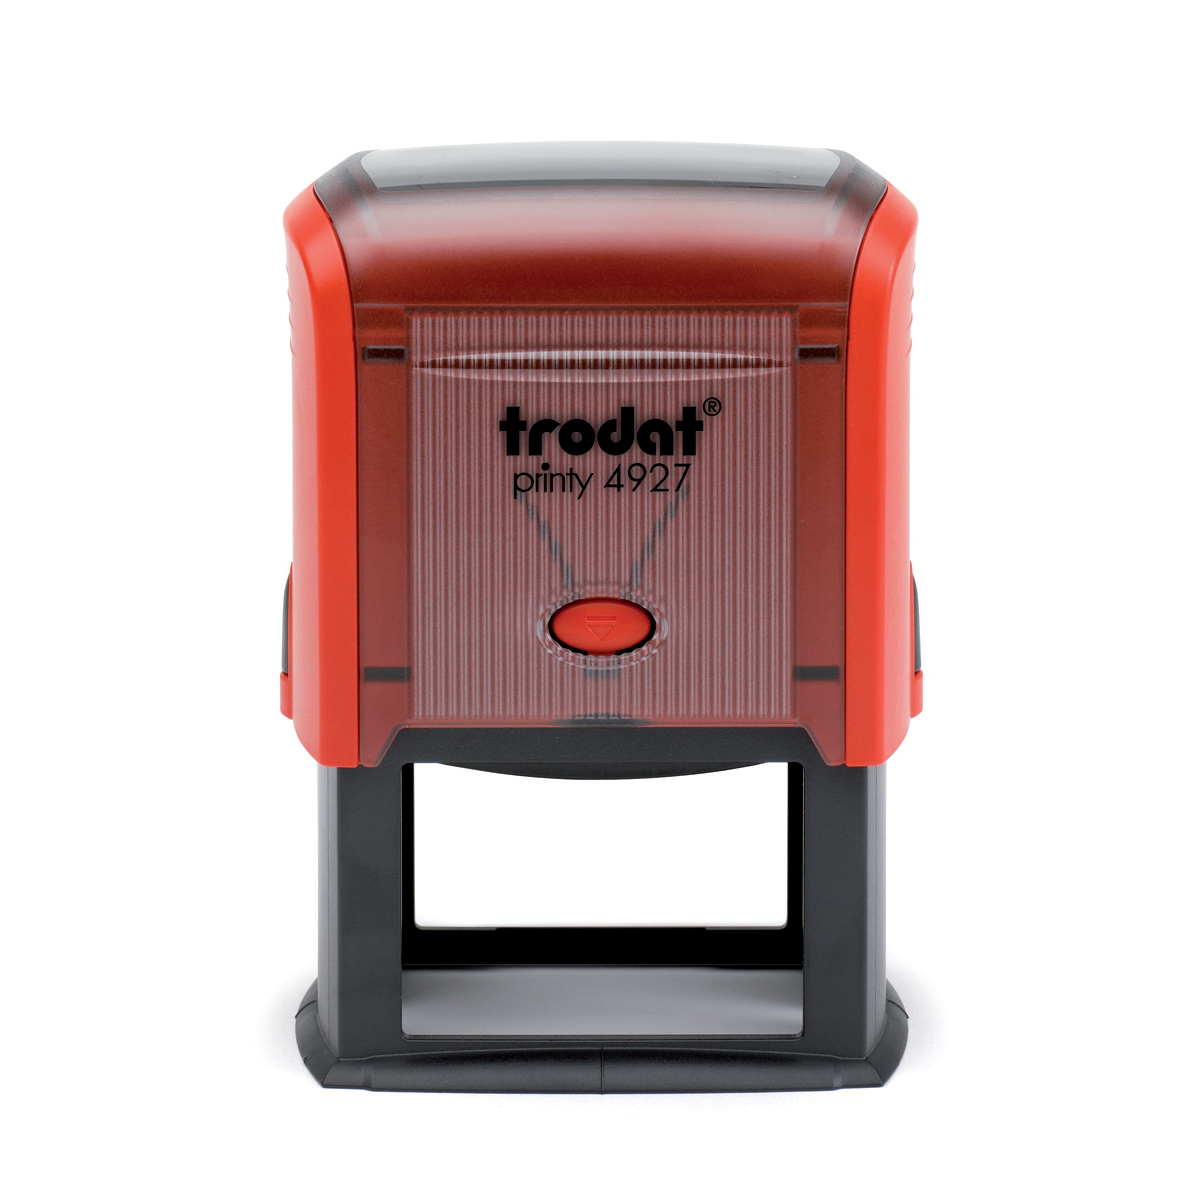 Trodat Printy 4927 Bespoke Custom Stamp Self-Inking Up to 8 lines Ref 156322